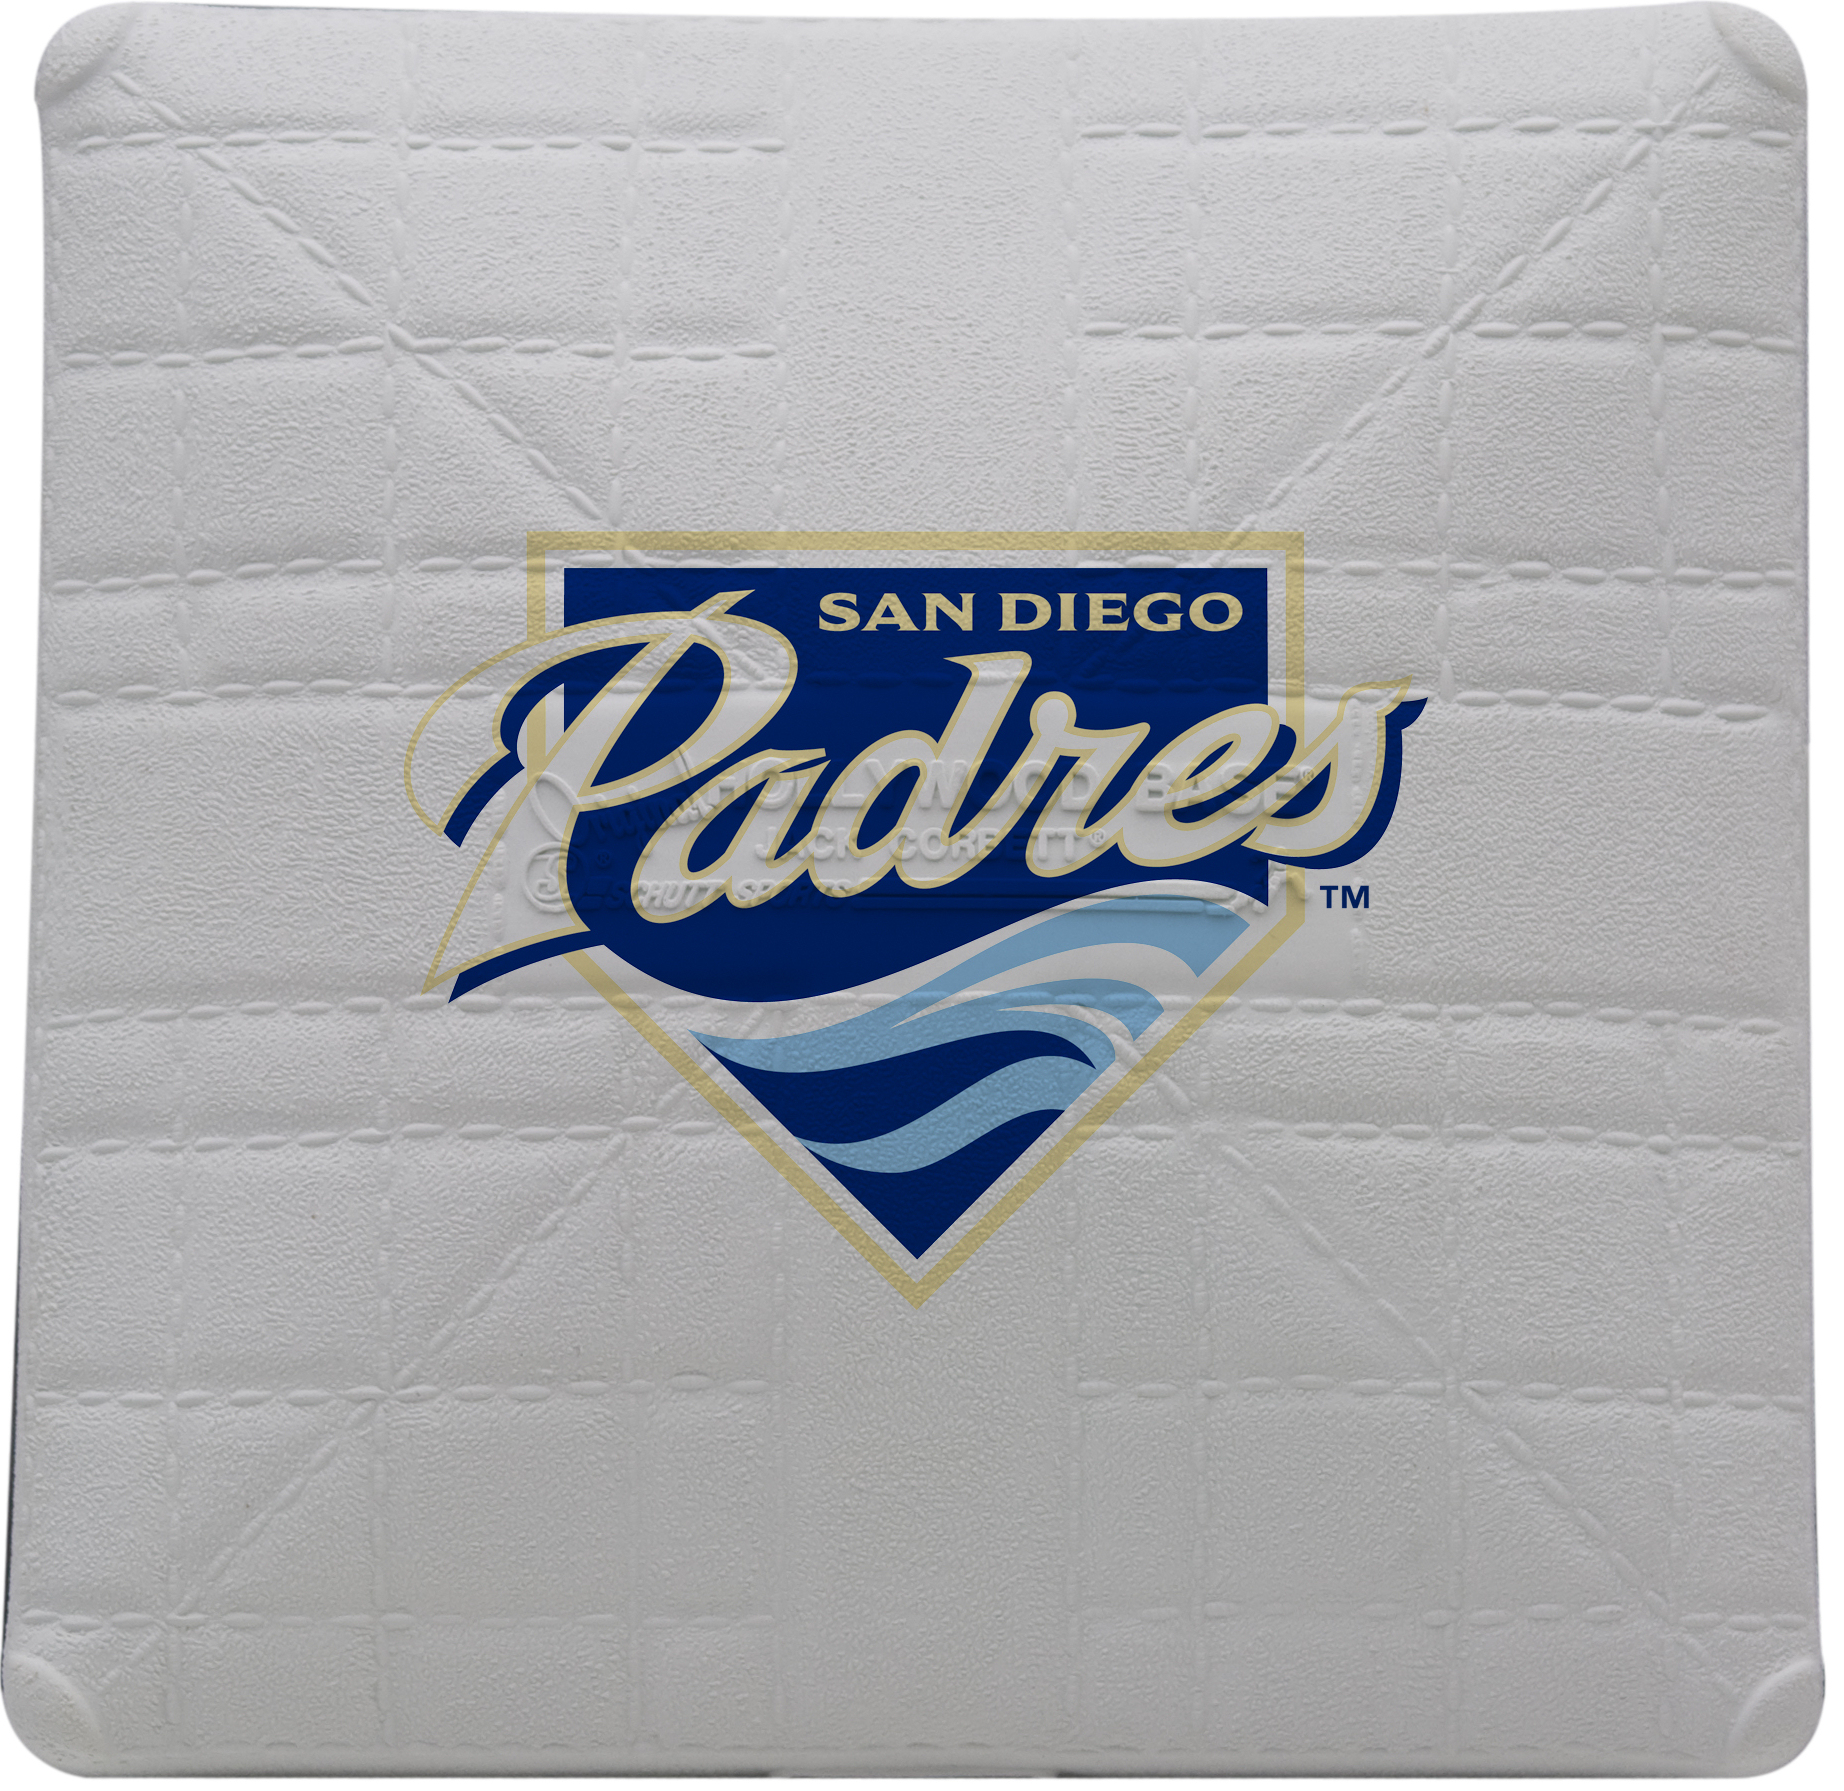 San Diego Padres Authentic Full Size Base